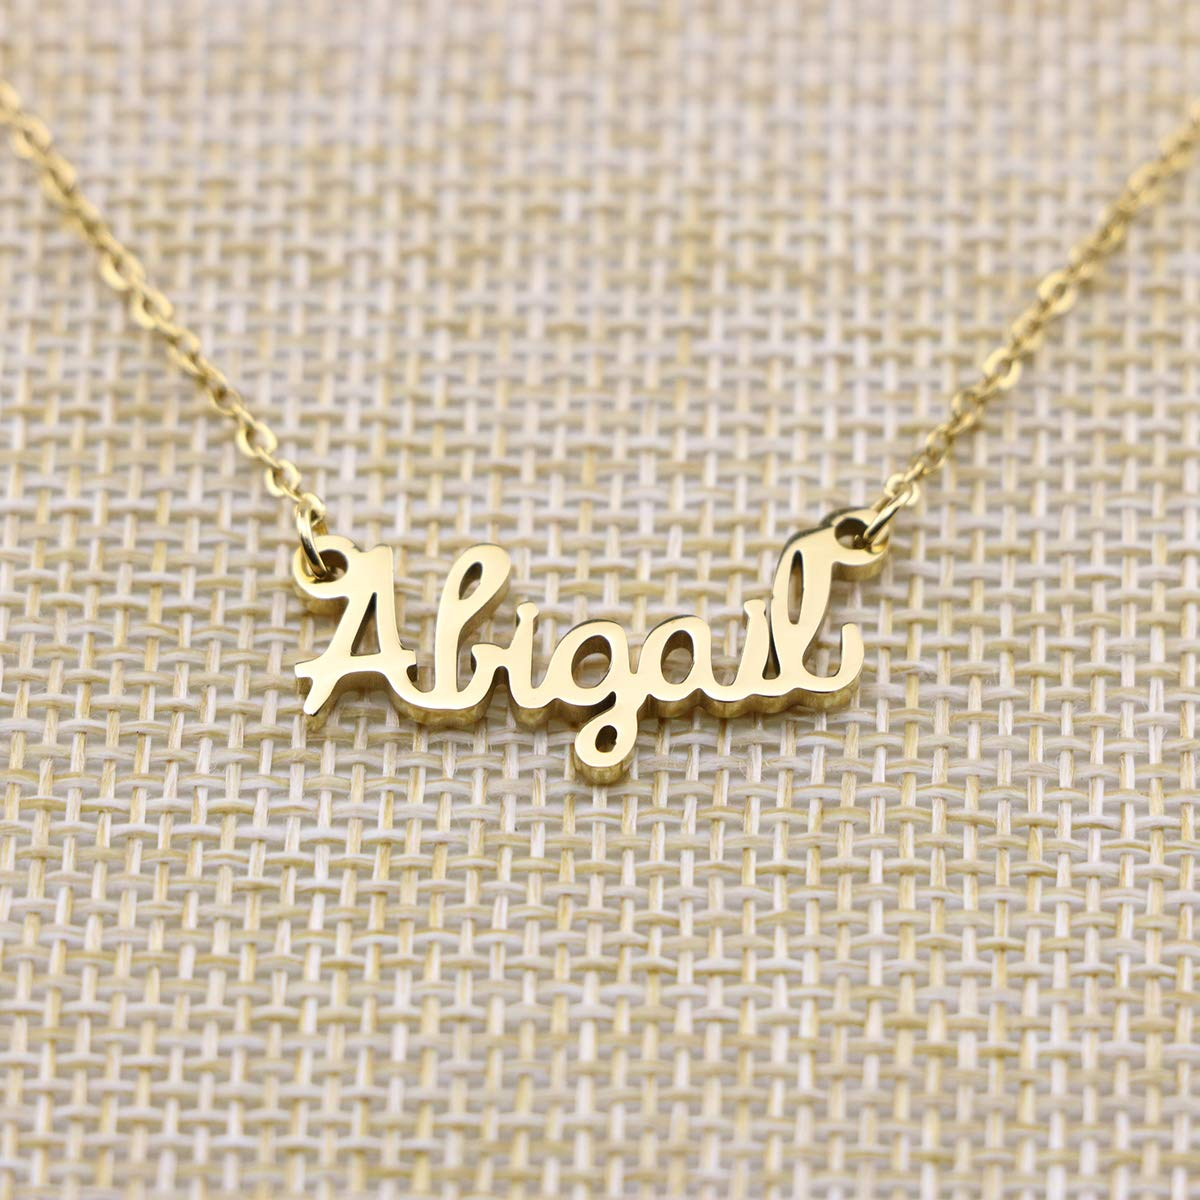 d899a51dd Amazon.com: Yiyang Personalized Name Necklace 18K Gold Plated Stainless  Steel Jewelry Birthday Gift for Girls Abigail: Jewelry